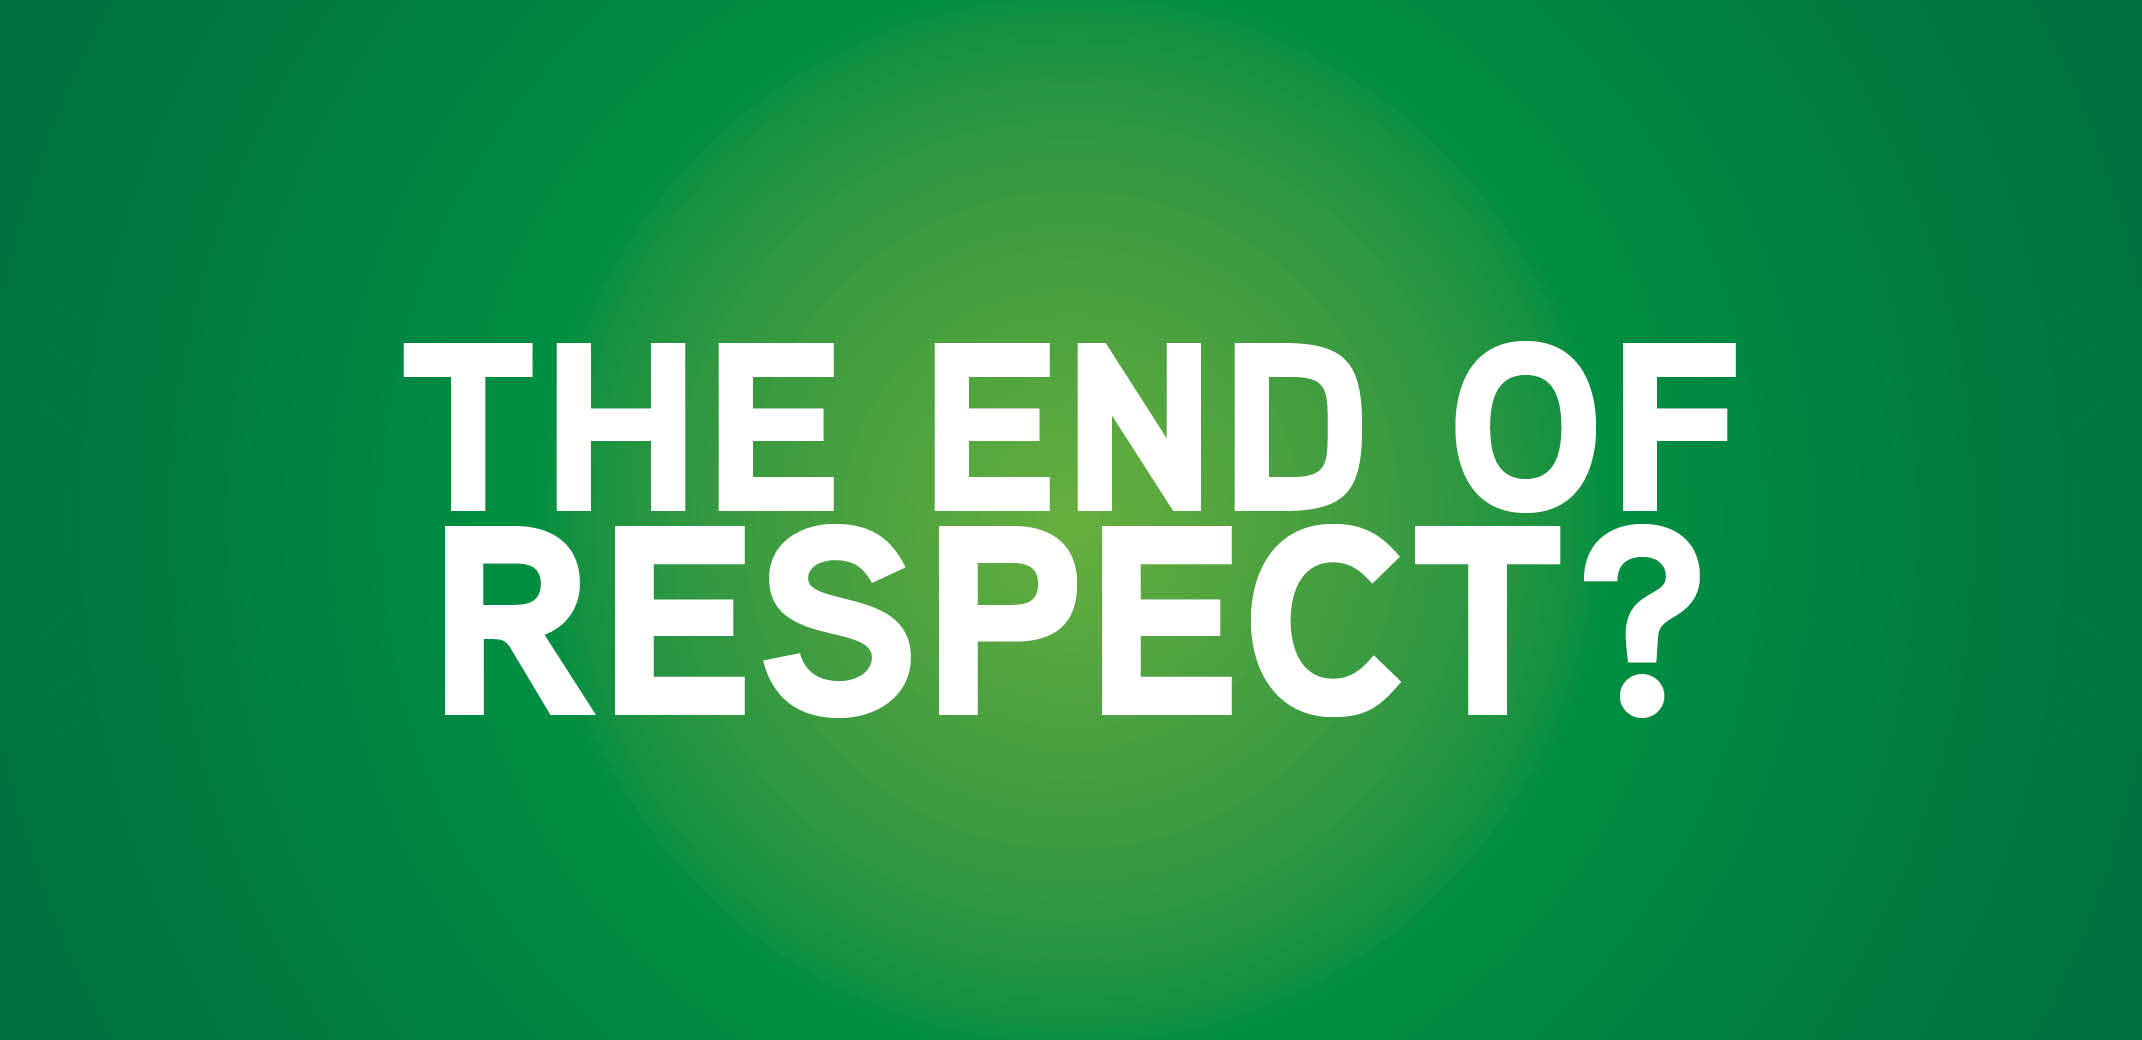 the end of respect?